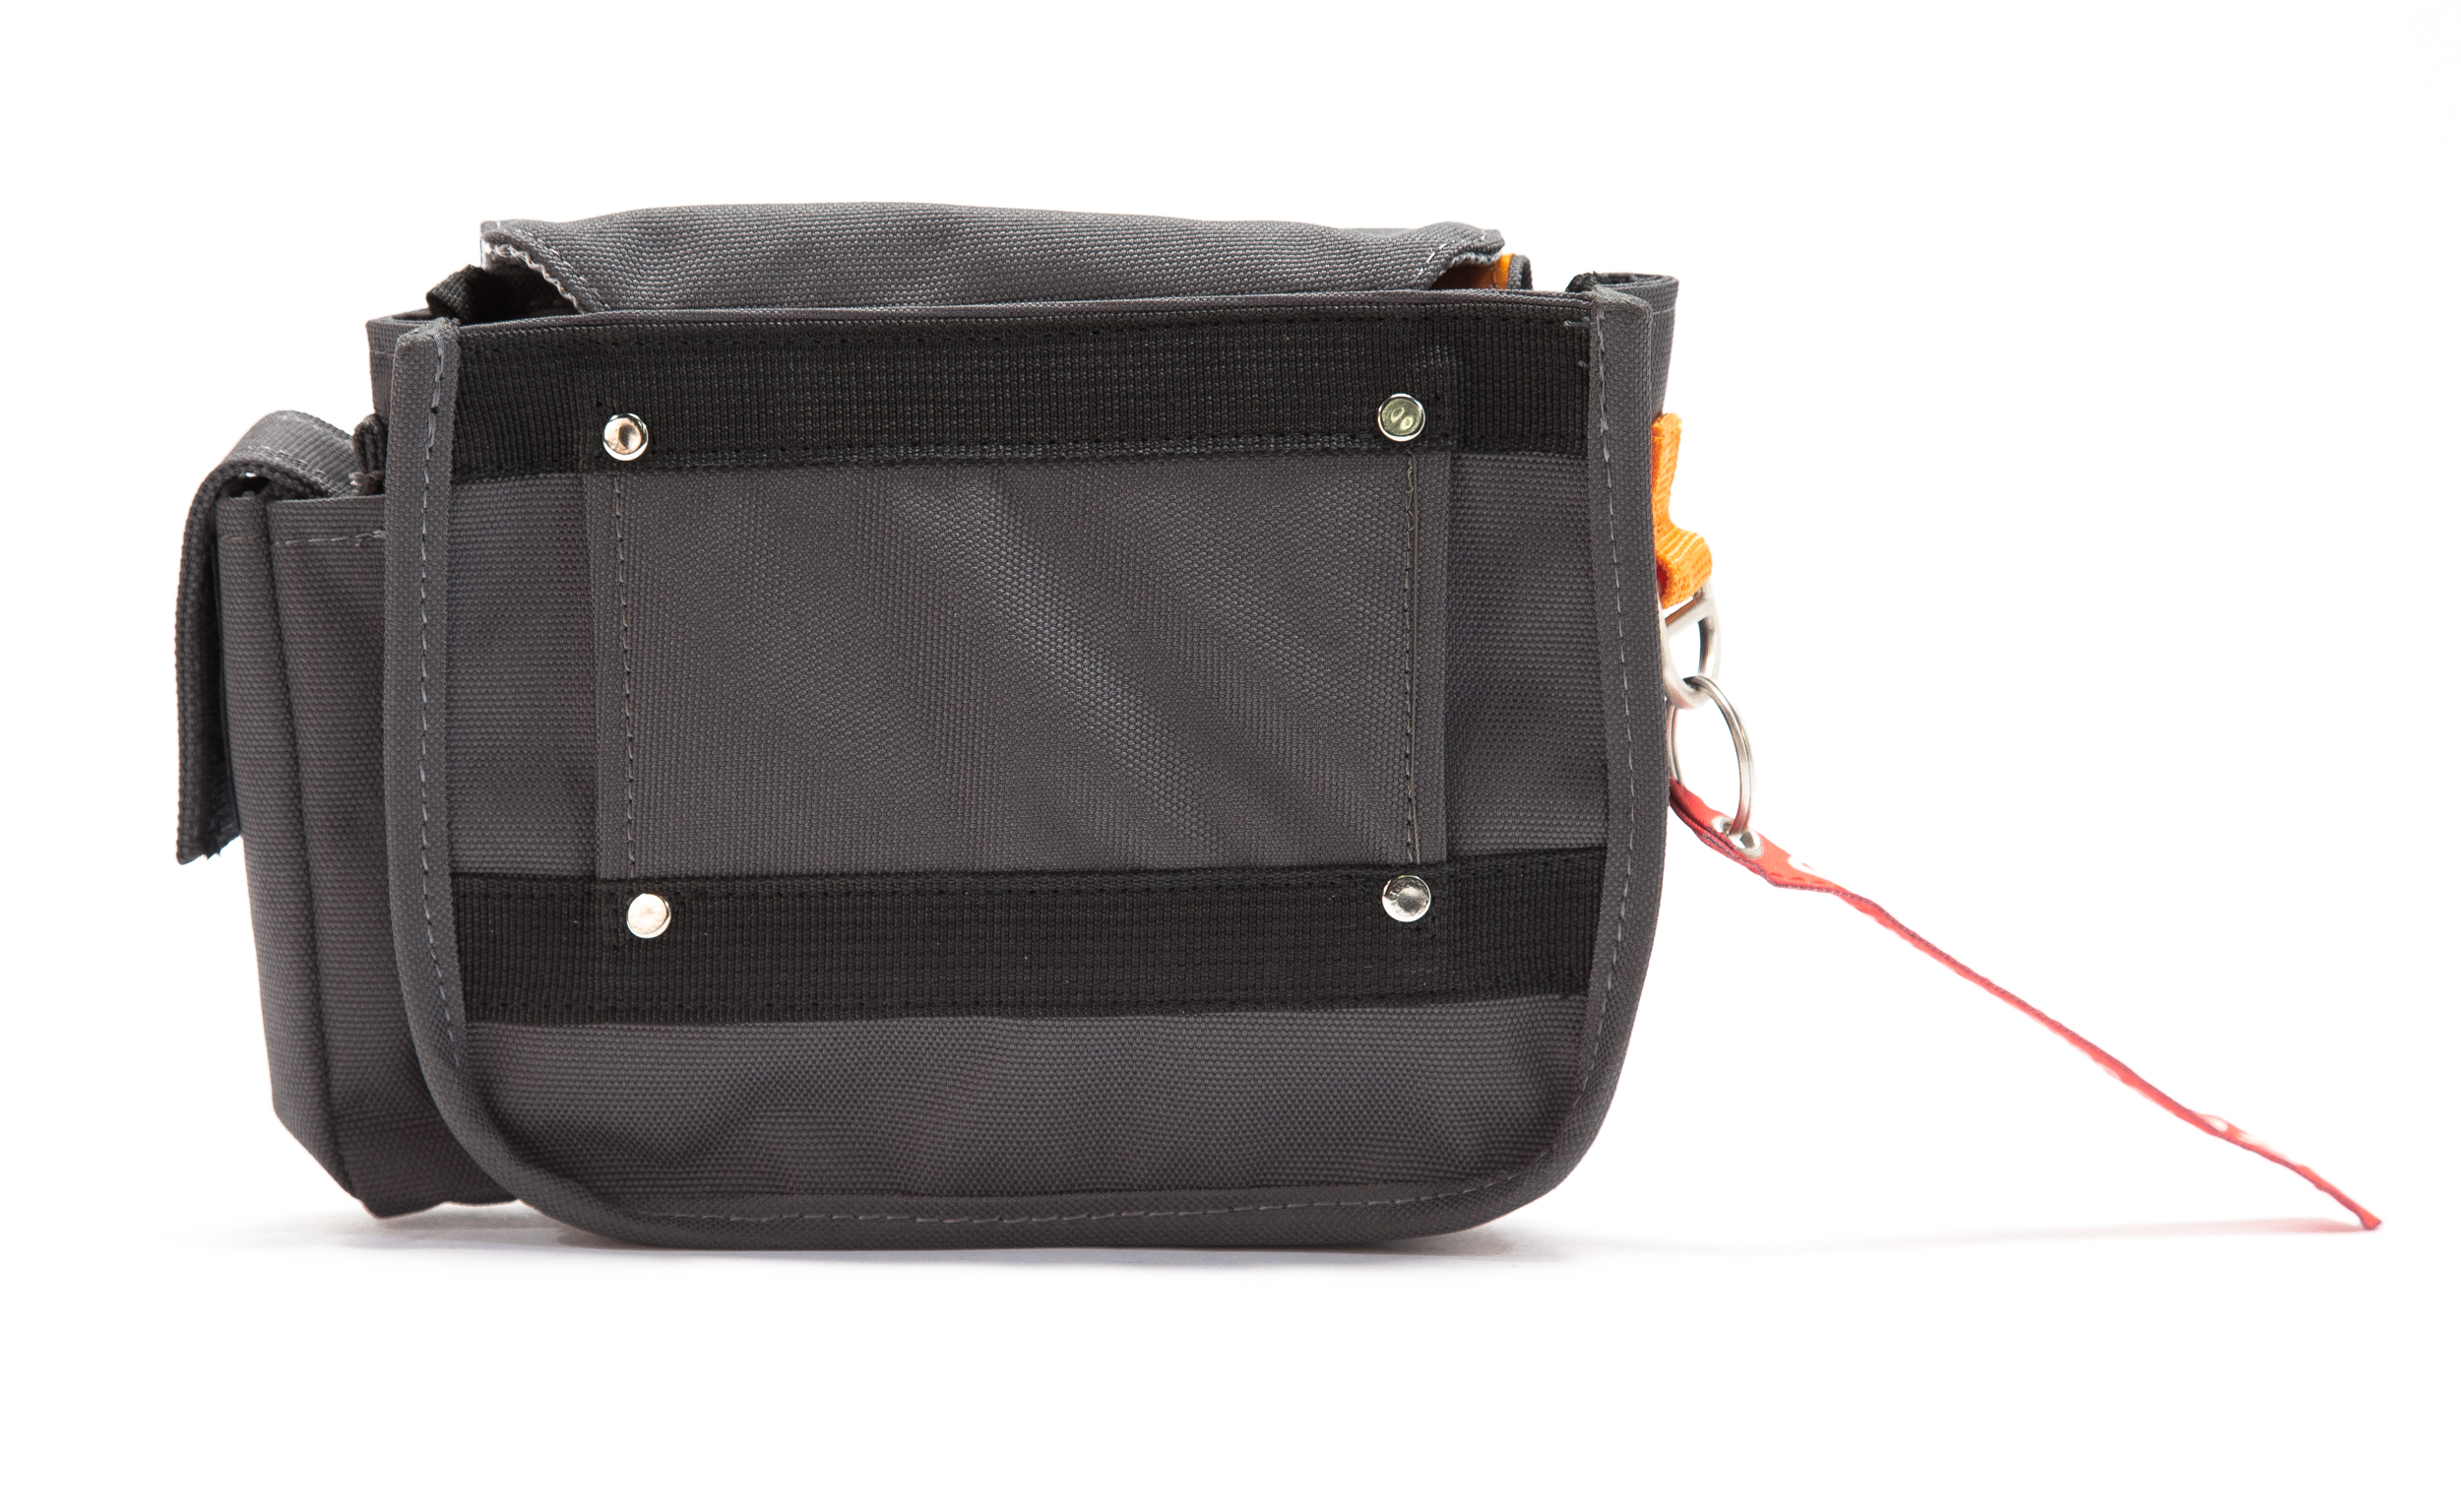 CineBags CB03 AC Pouch-4